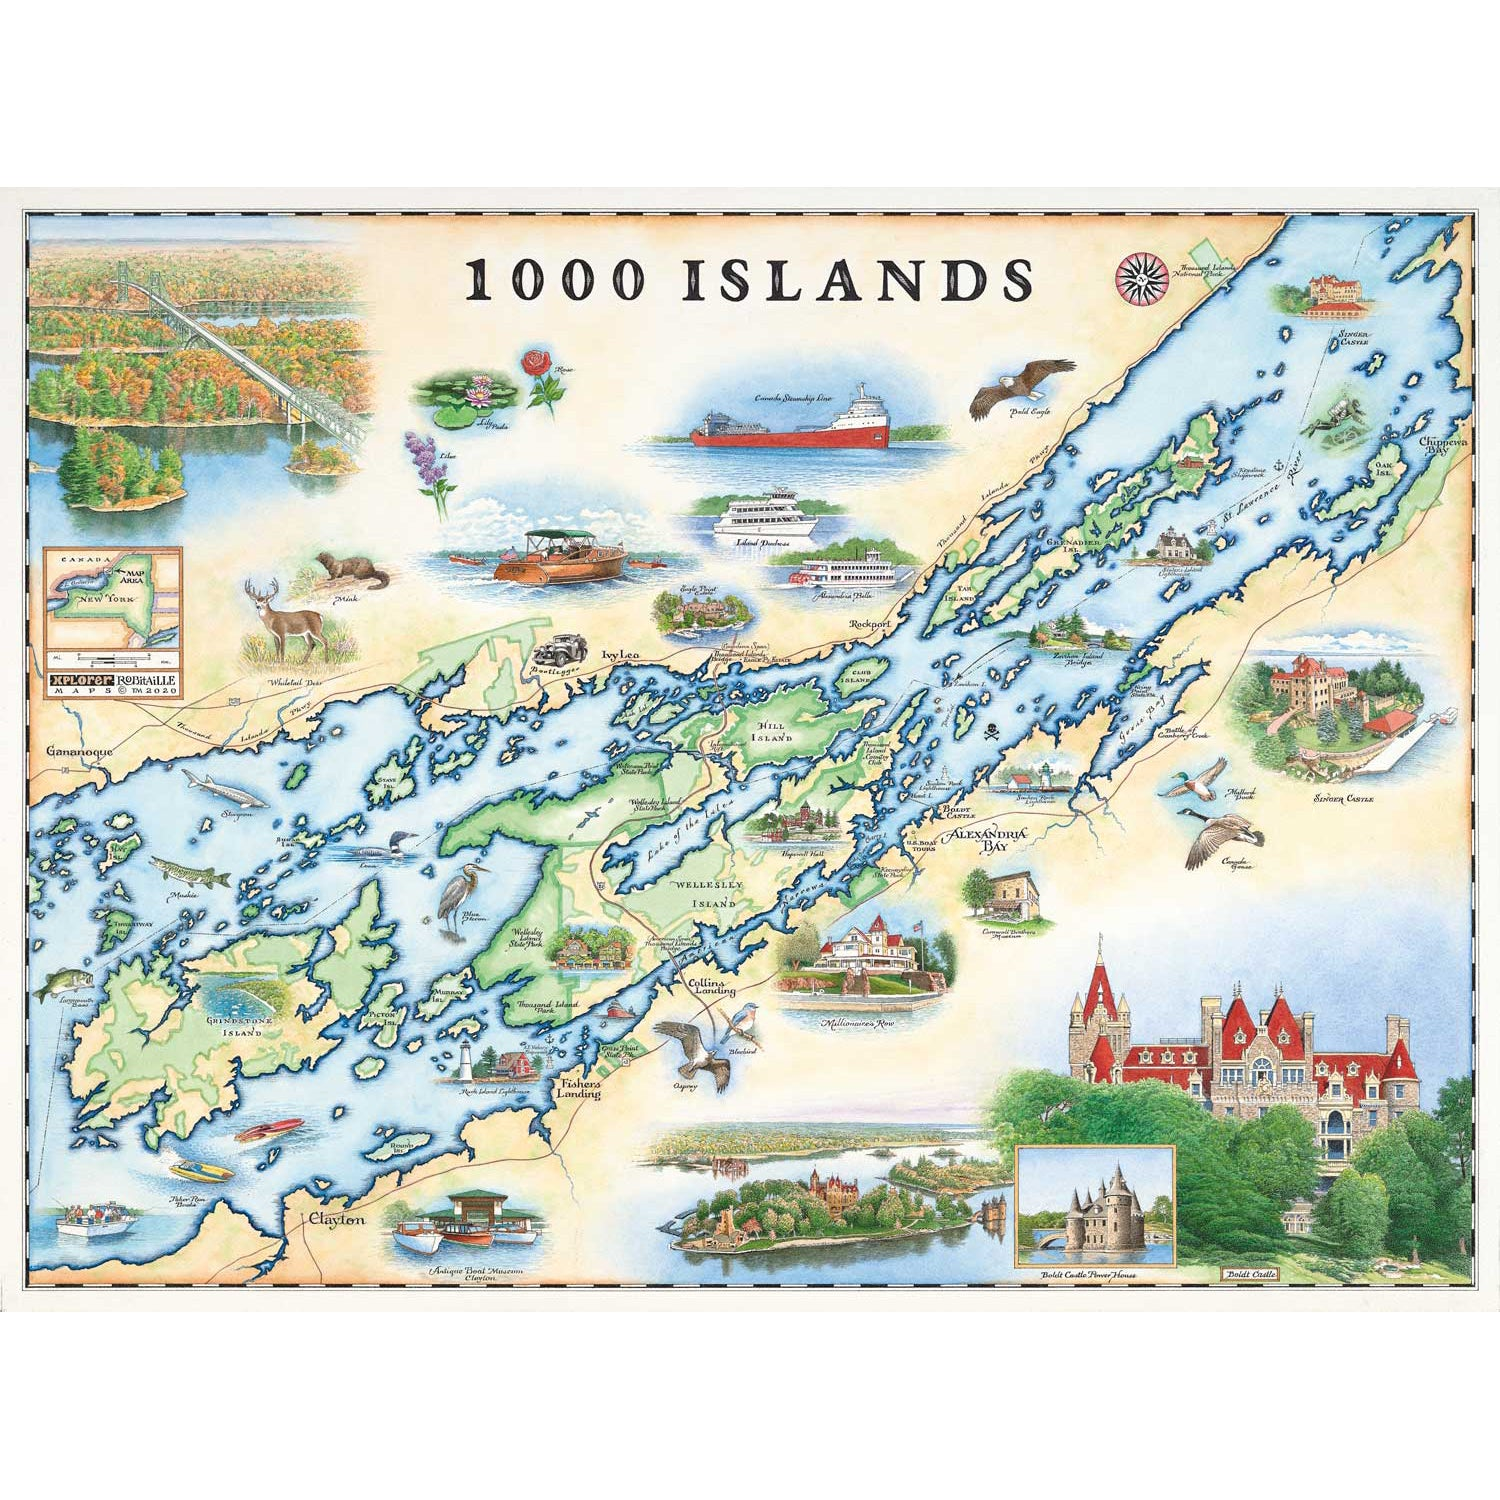 Map Of 1000 Islands Canada 1000 Islands Map   Thousand Islands National Park Map   Xplorer Maps